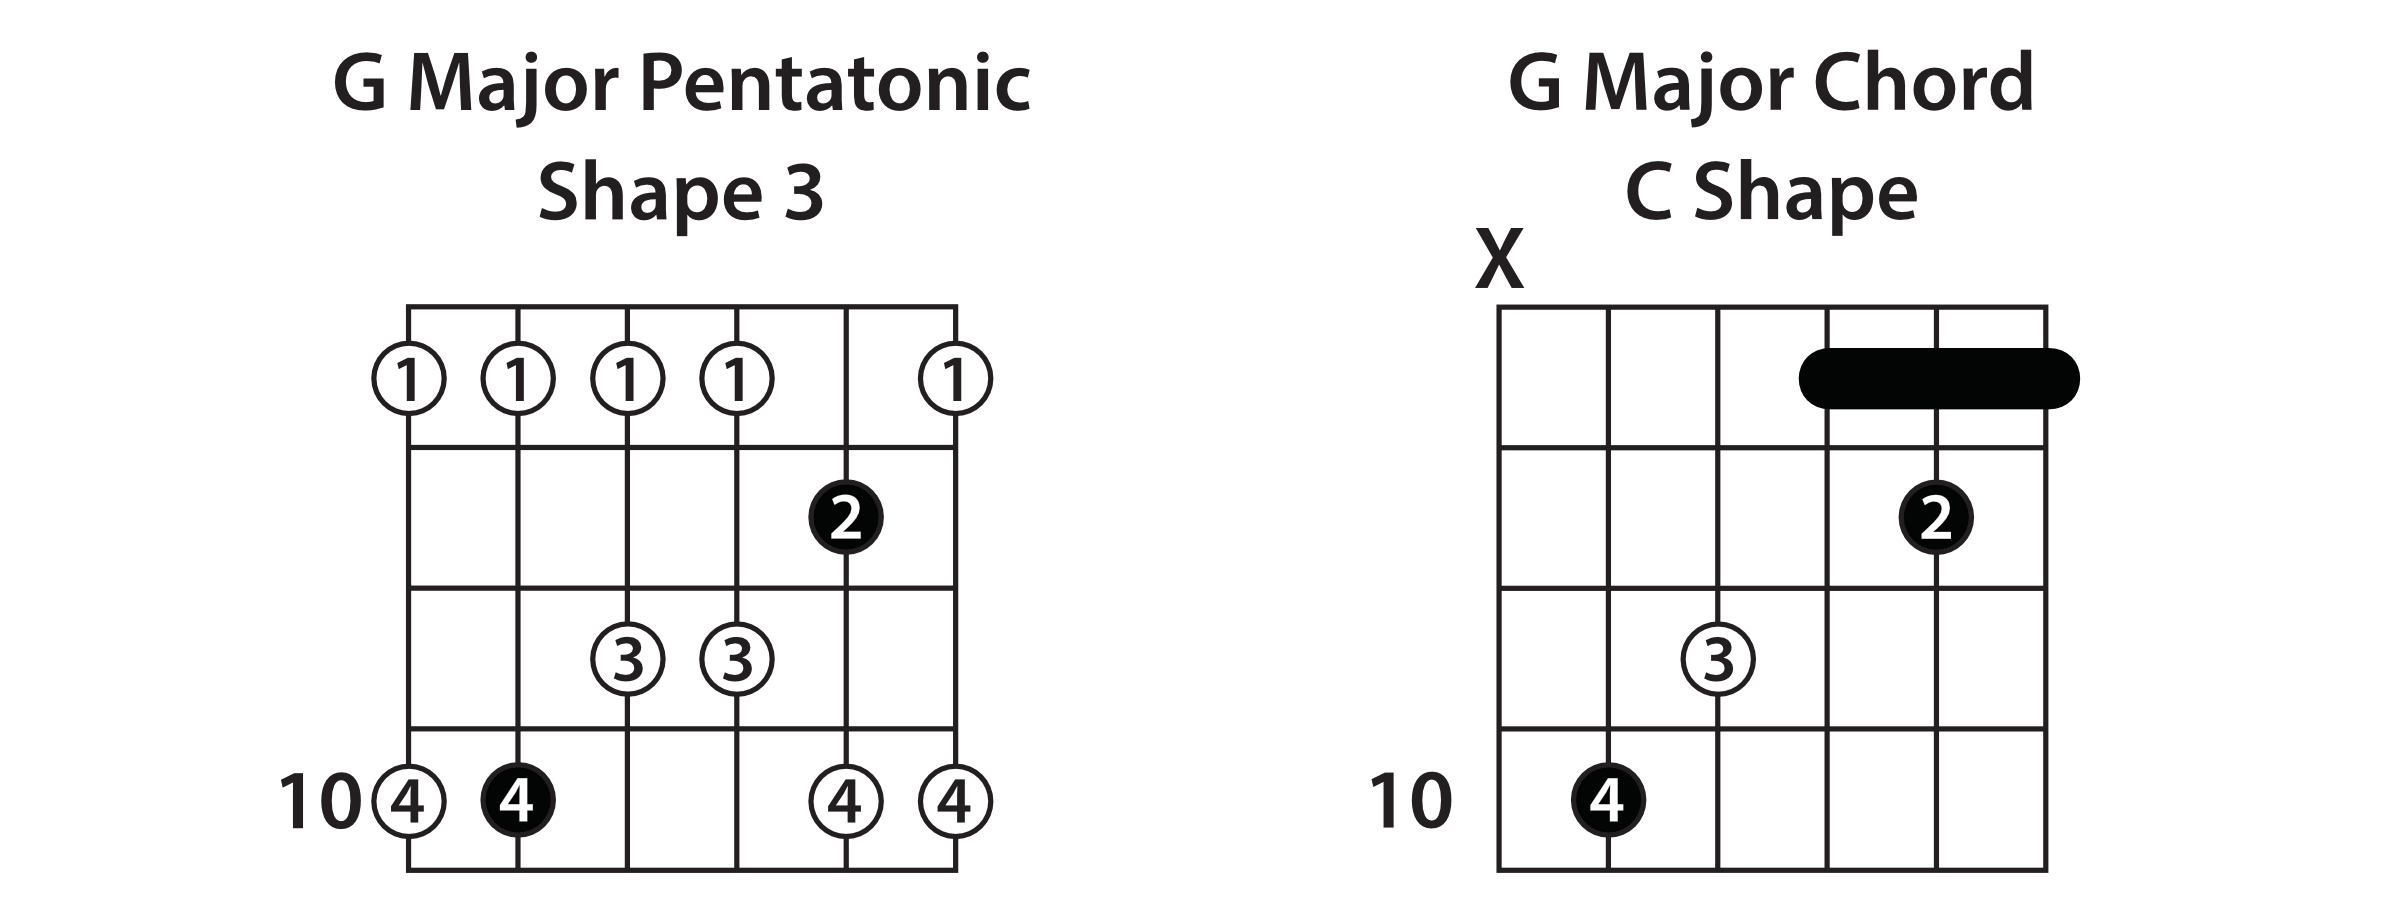 Major Pentatonic Shape 3